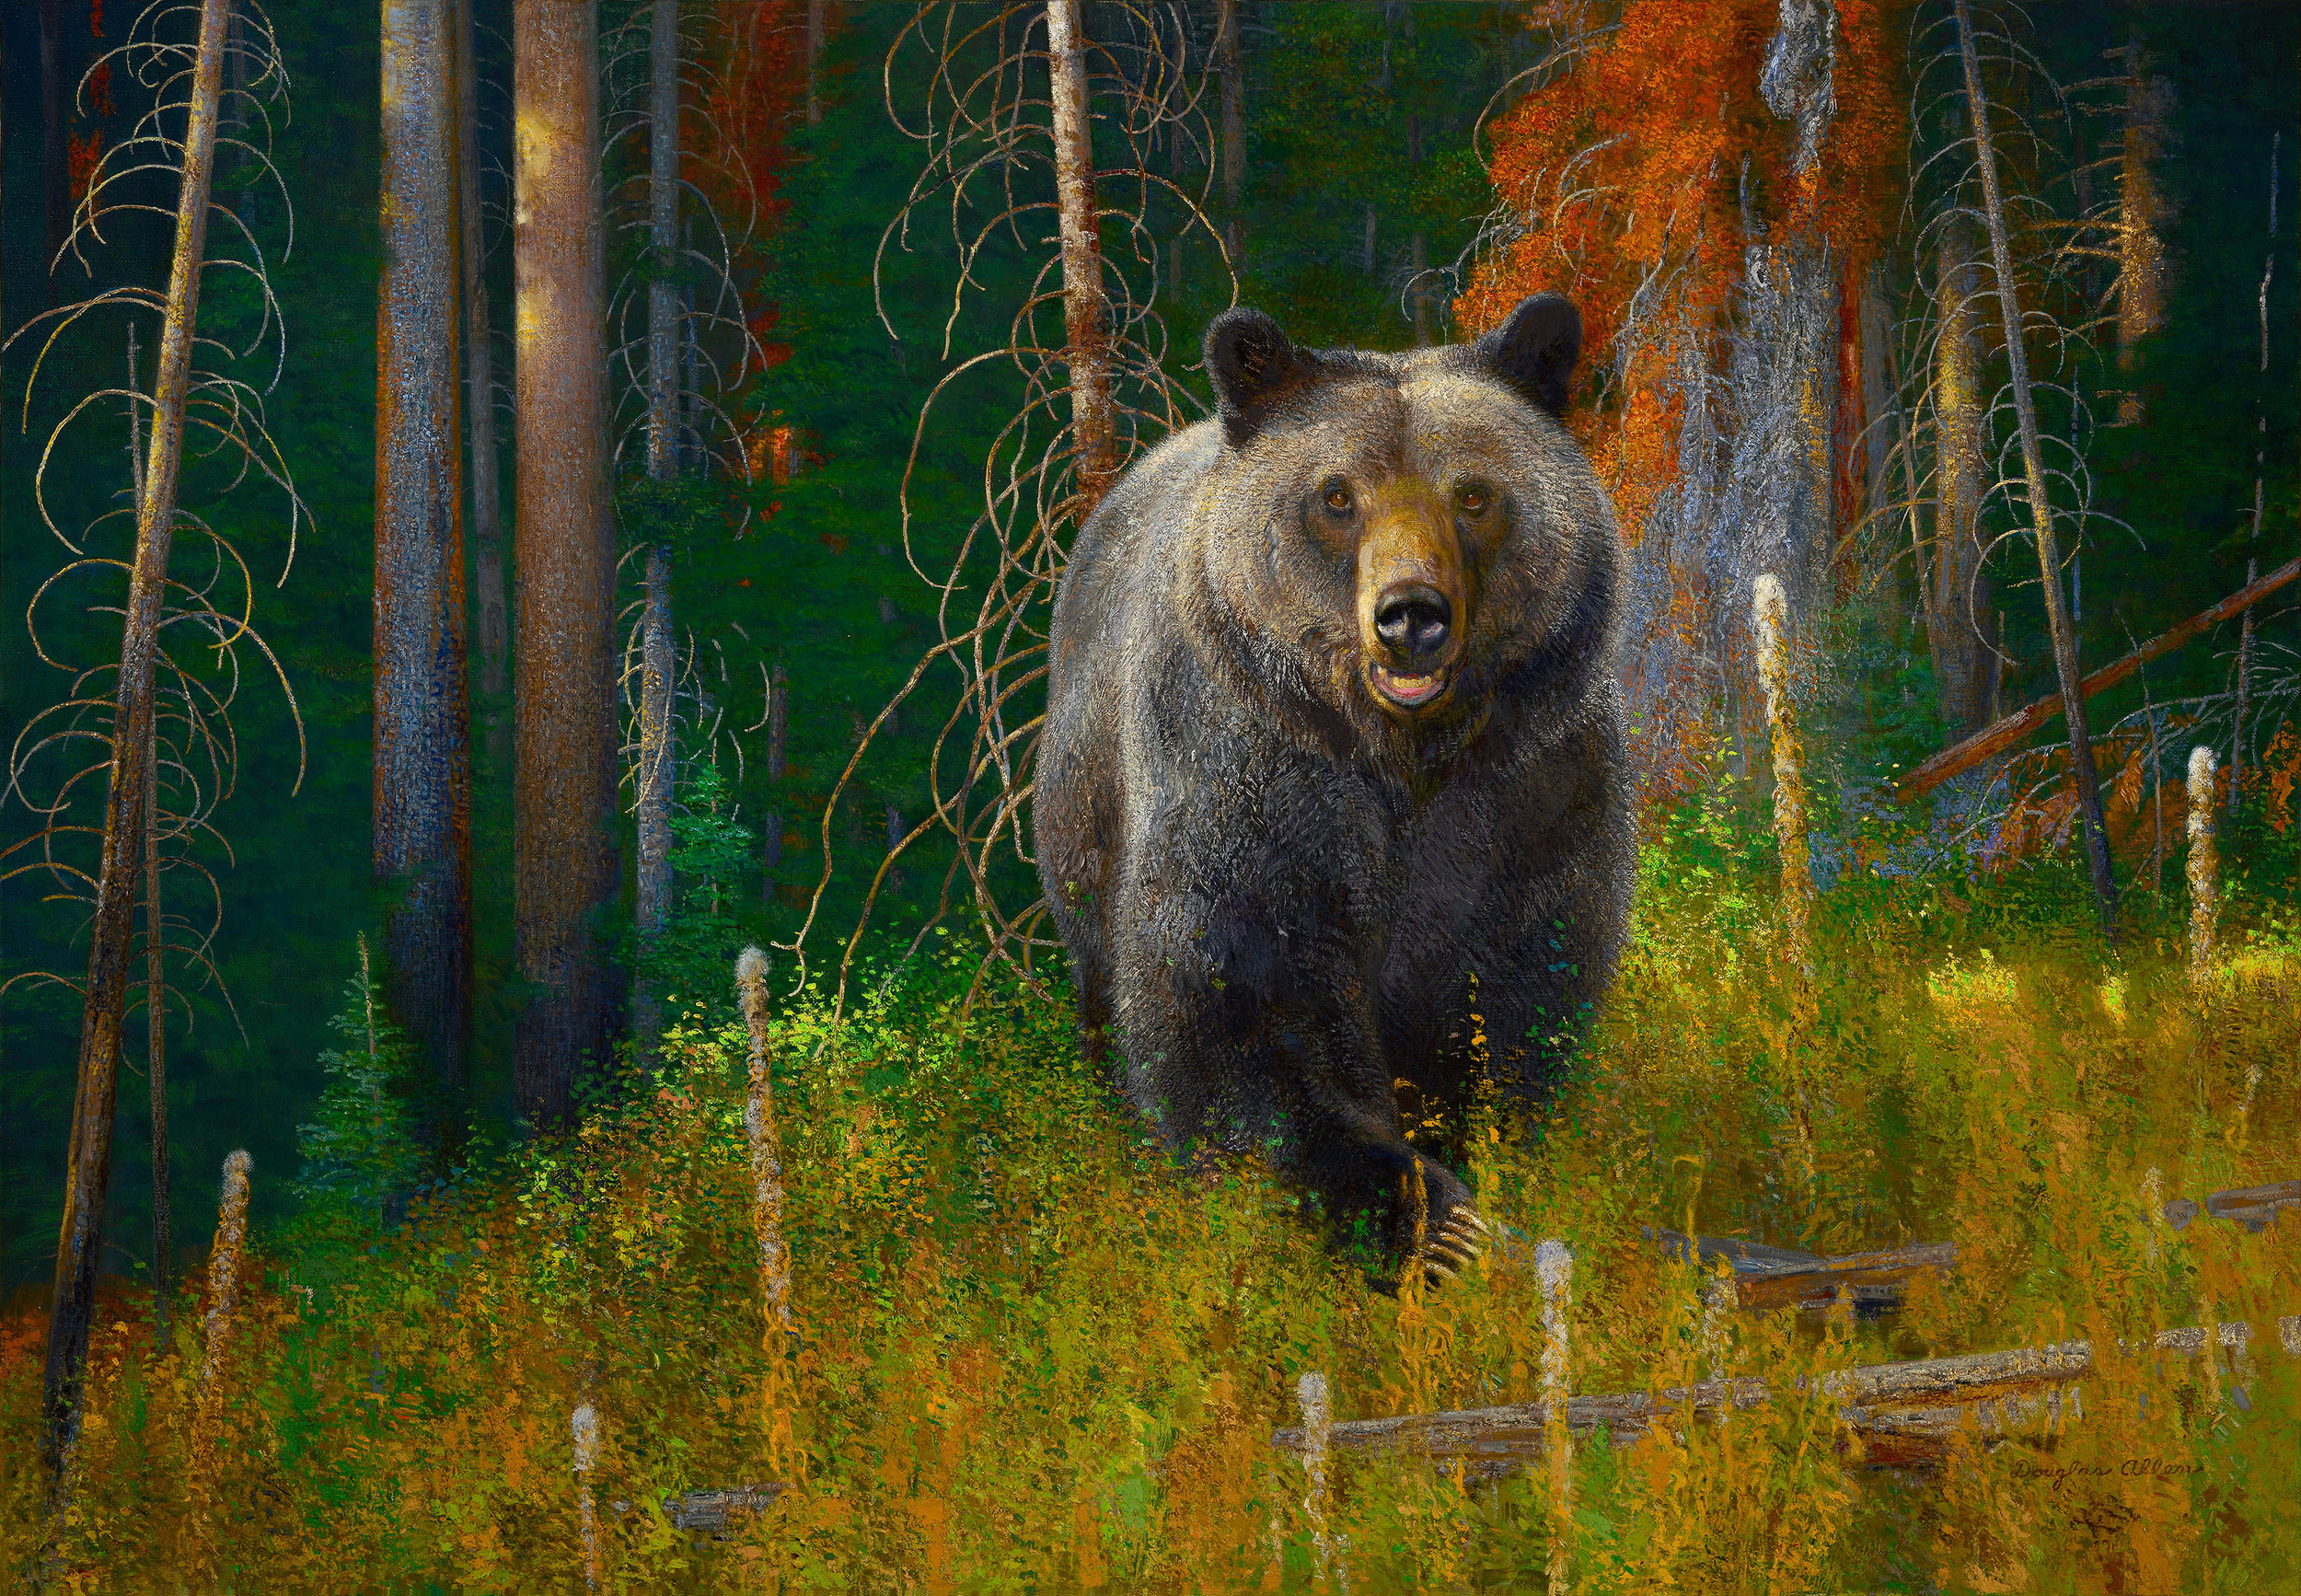 HIKERS NIGHTMARE (Grizzly Bear)